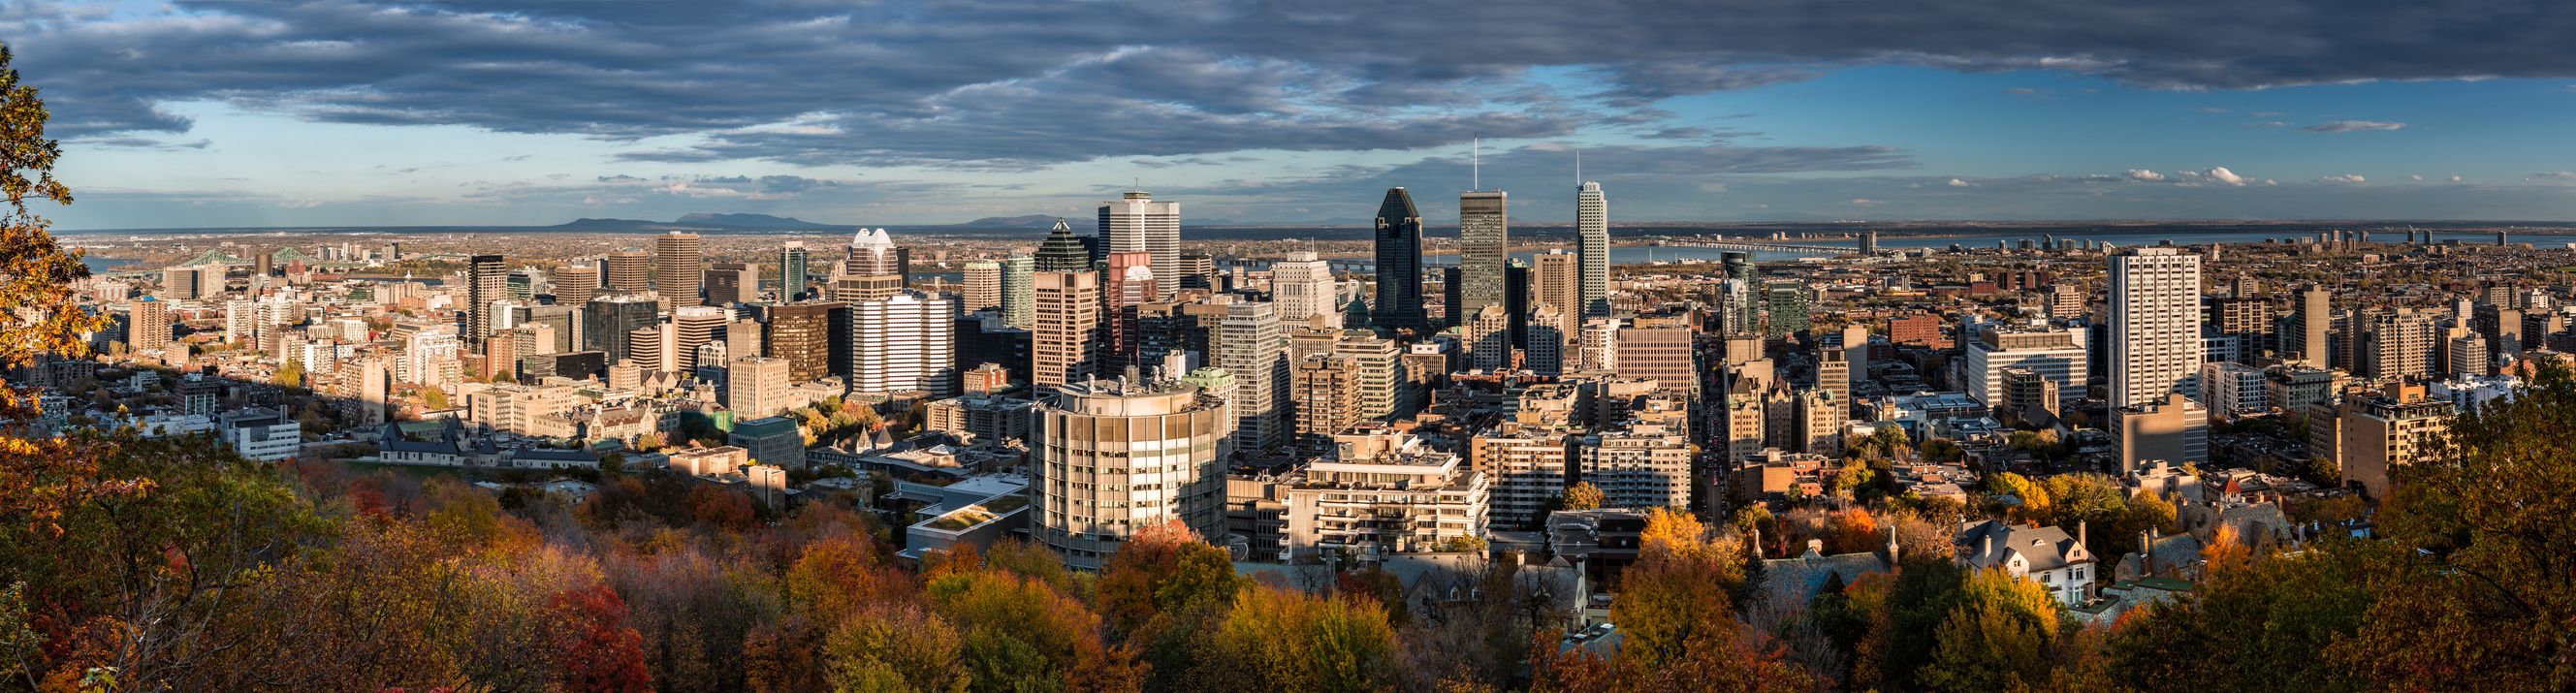 Montreal panorama as viewed from the Mount Royal on a late afternoon.